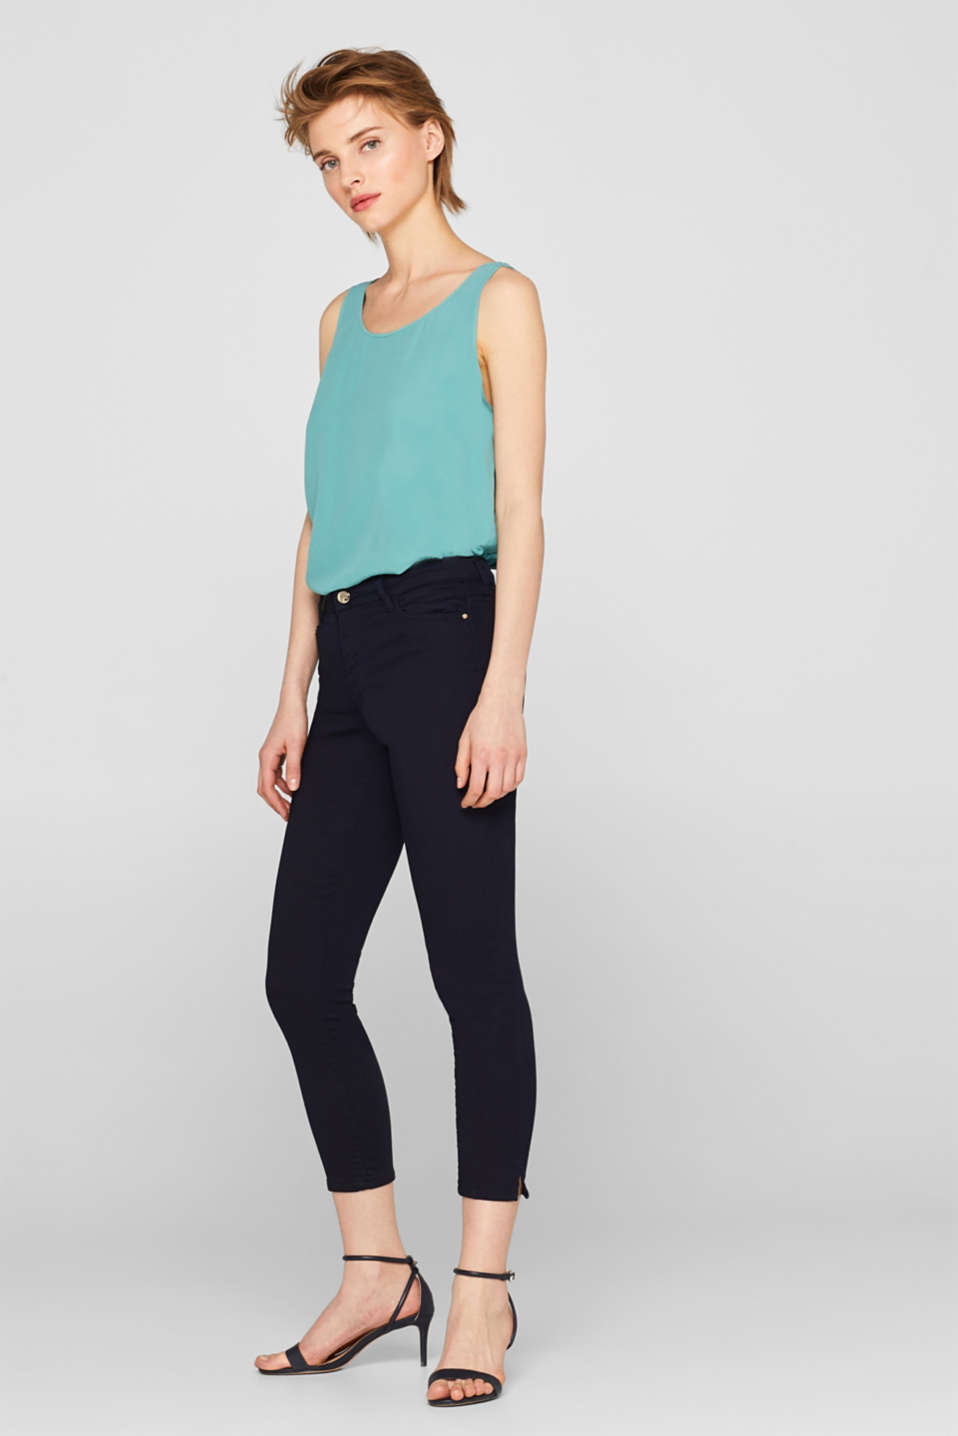 Esprit - Stretch capris in a simple look